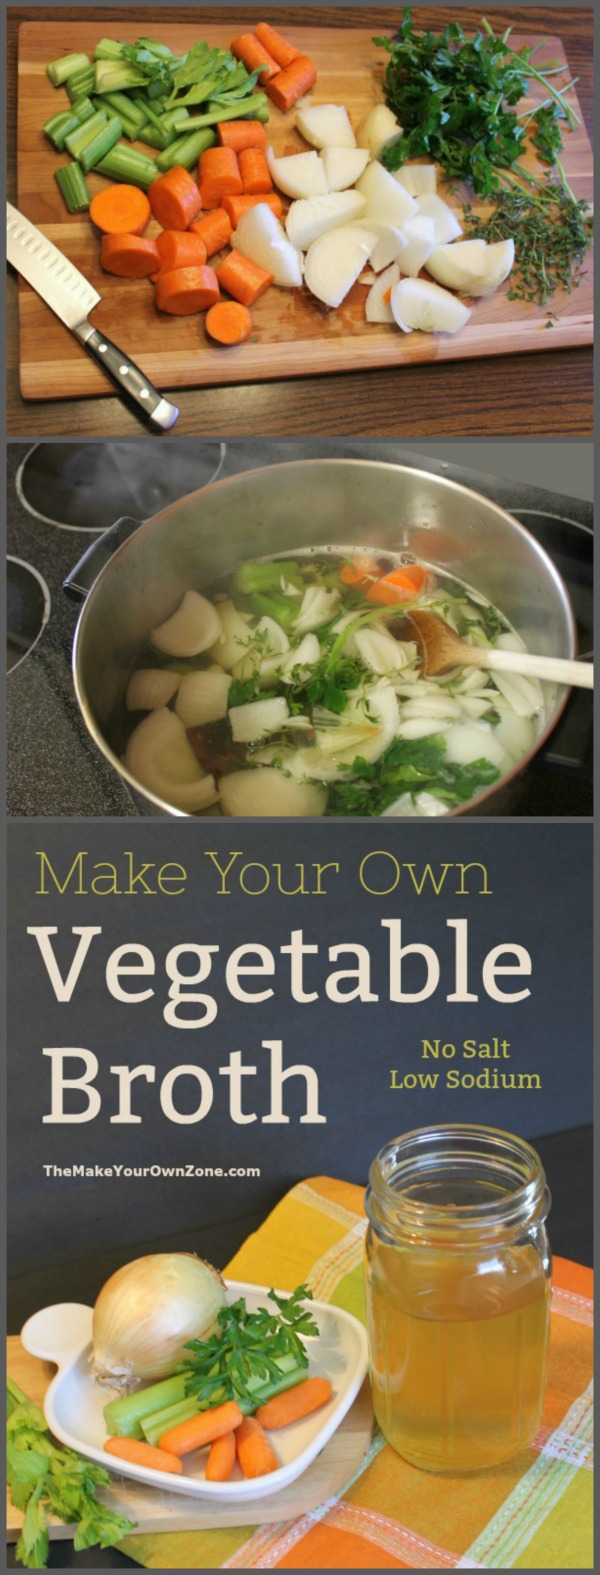 How to make your own vegetable stock - An easy homemade recipe to make homemade low sodium vegetable broth